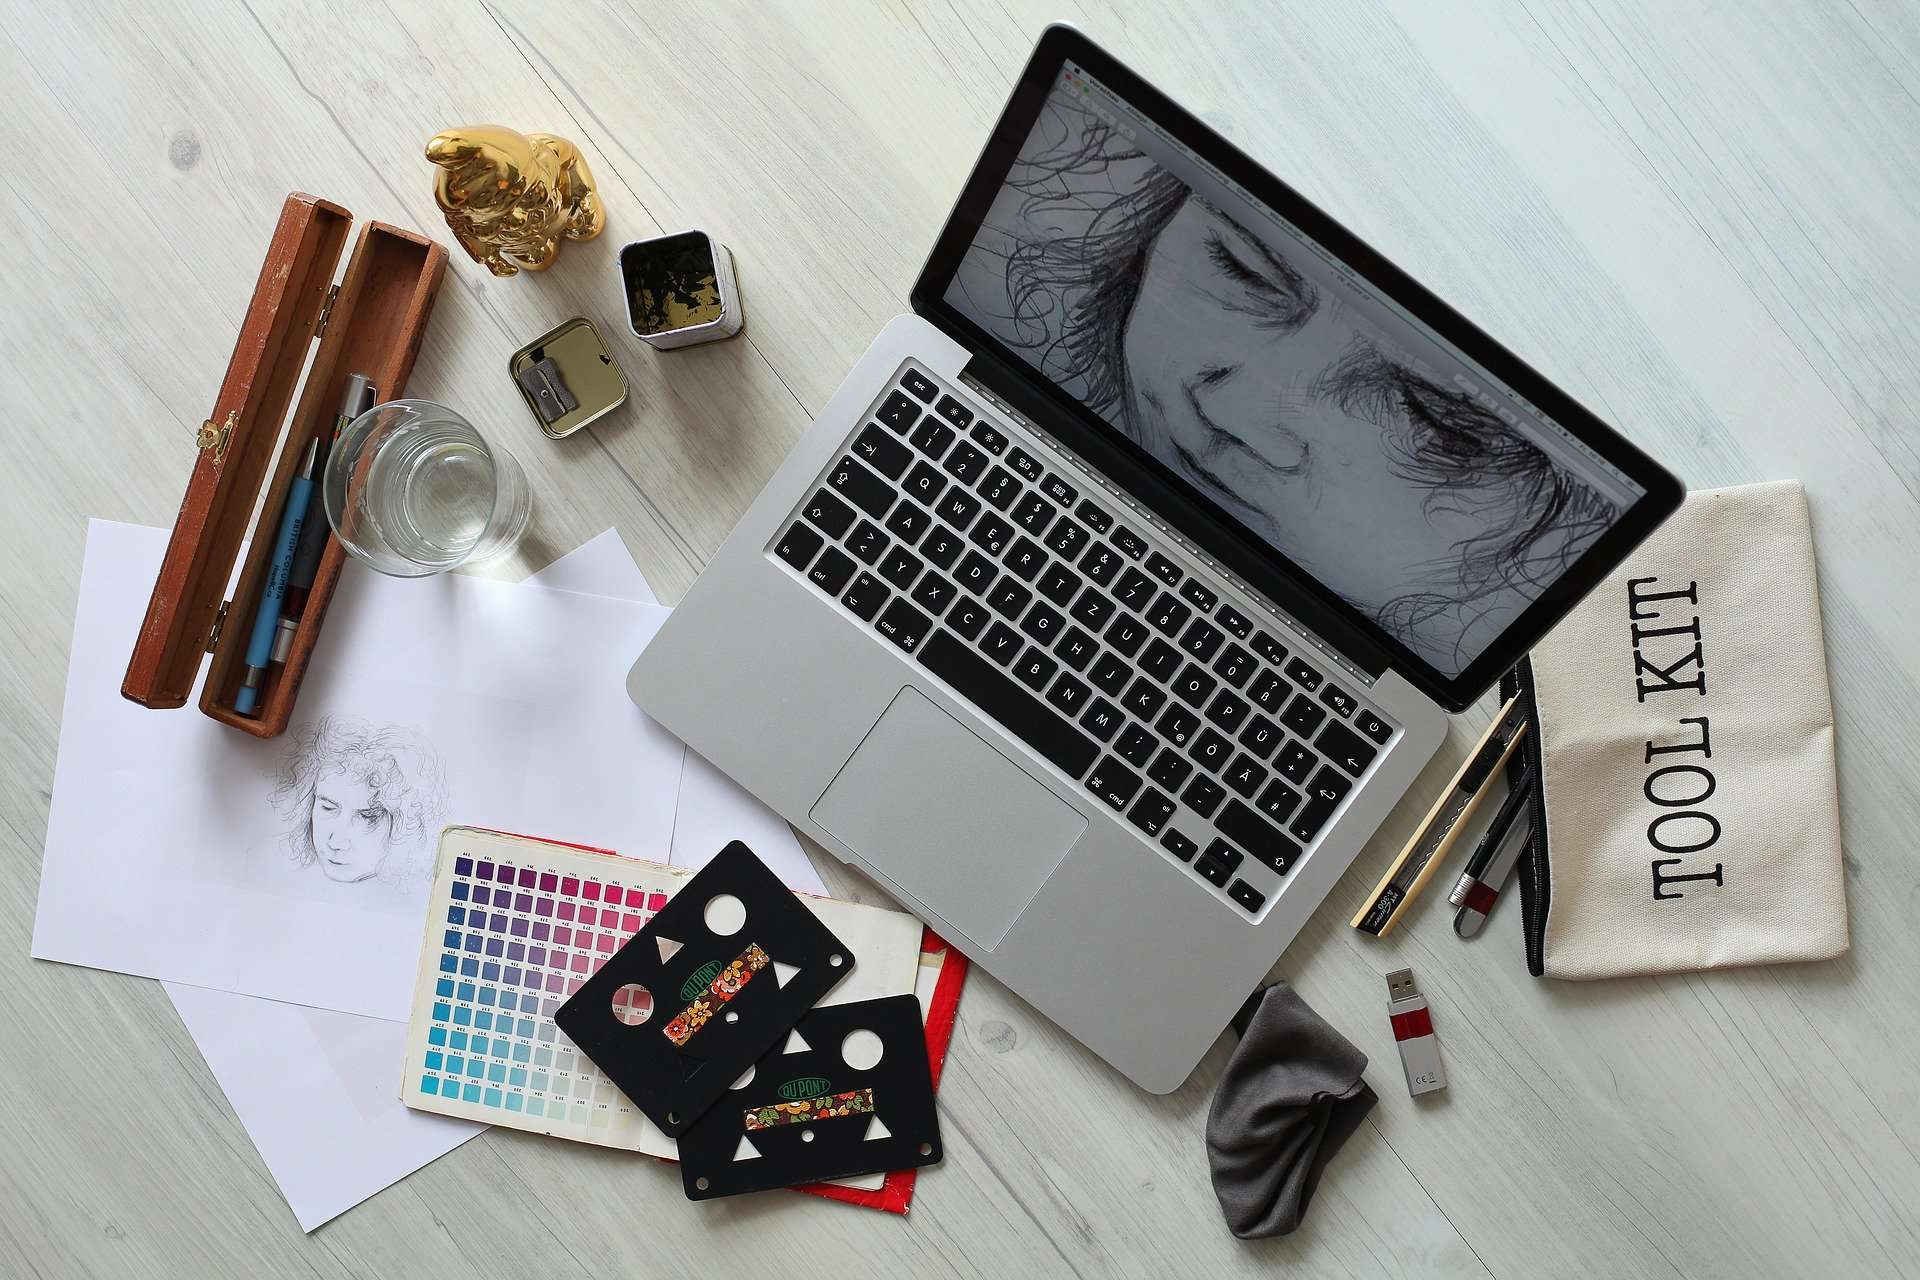 best online course for graphic design